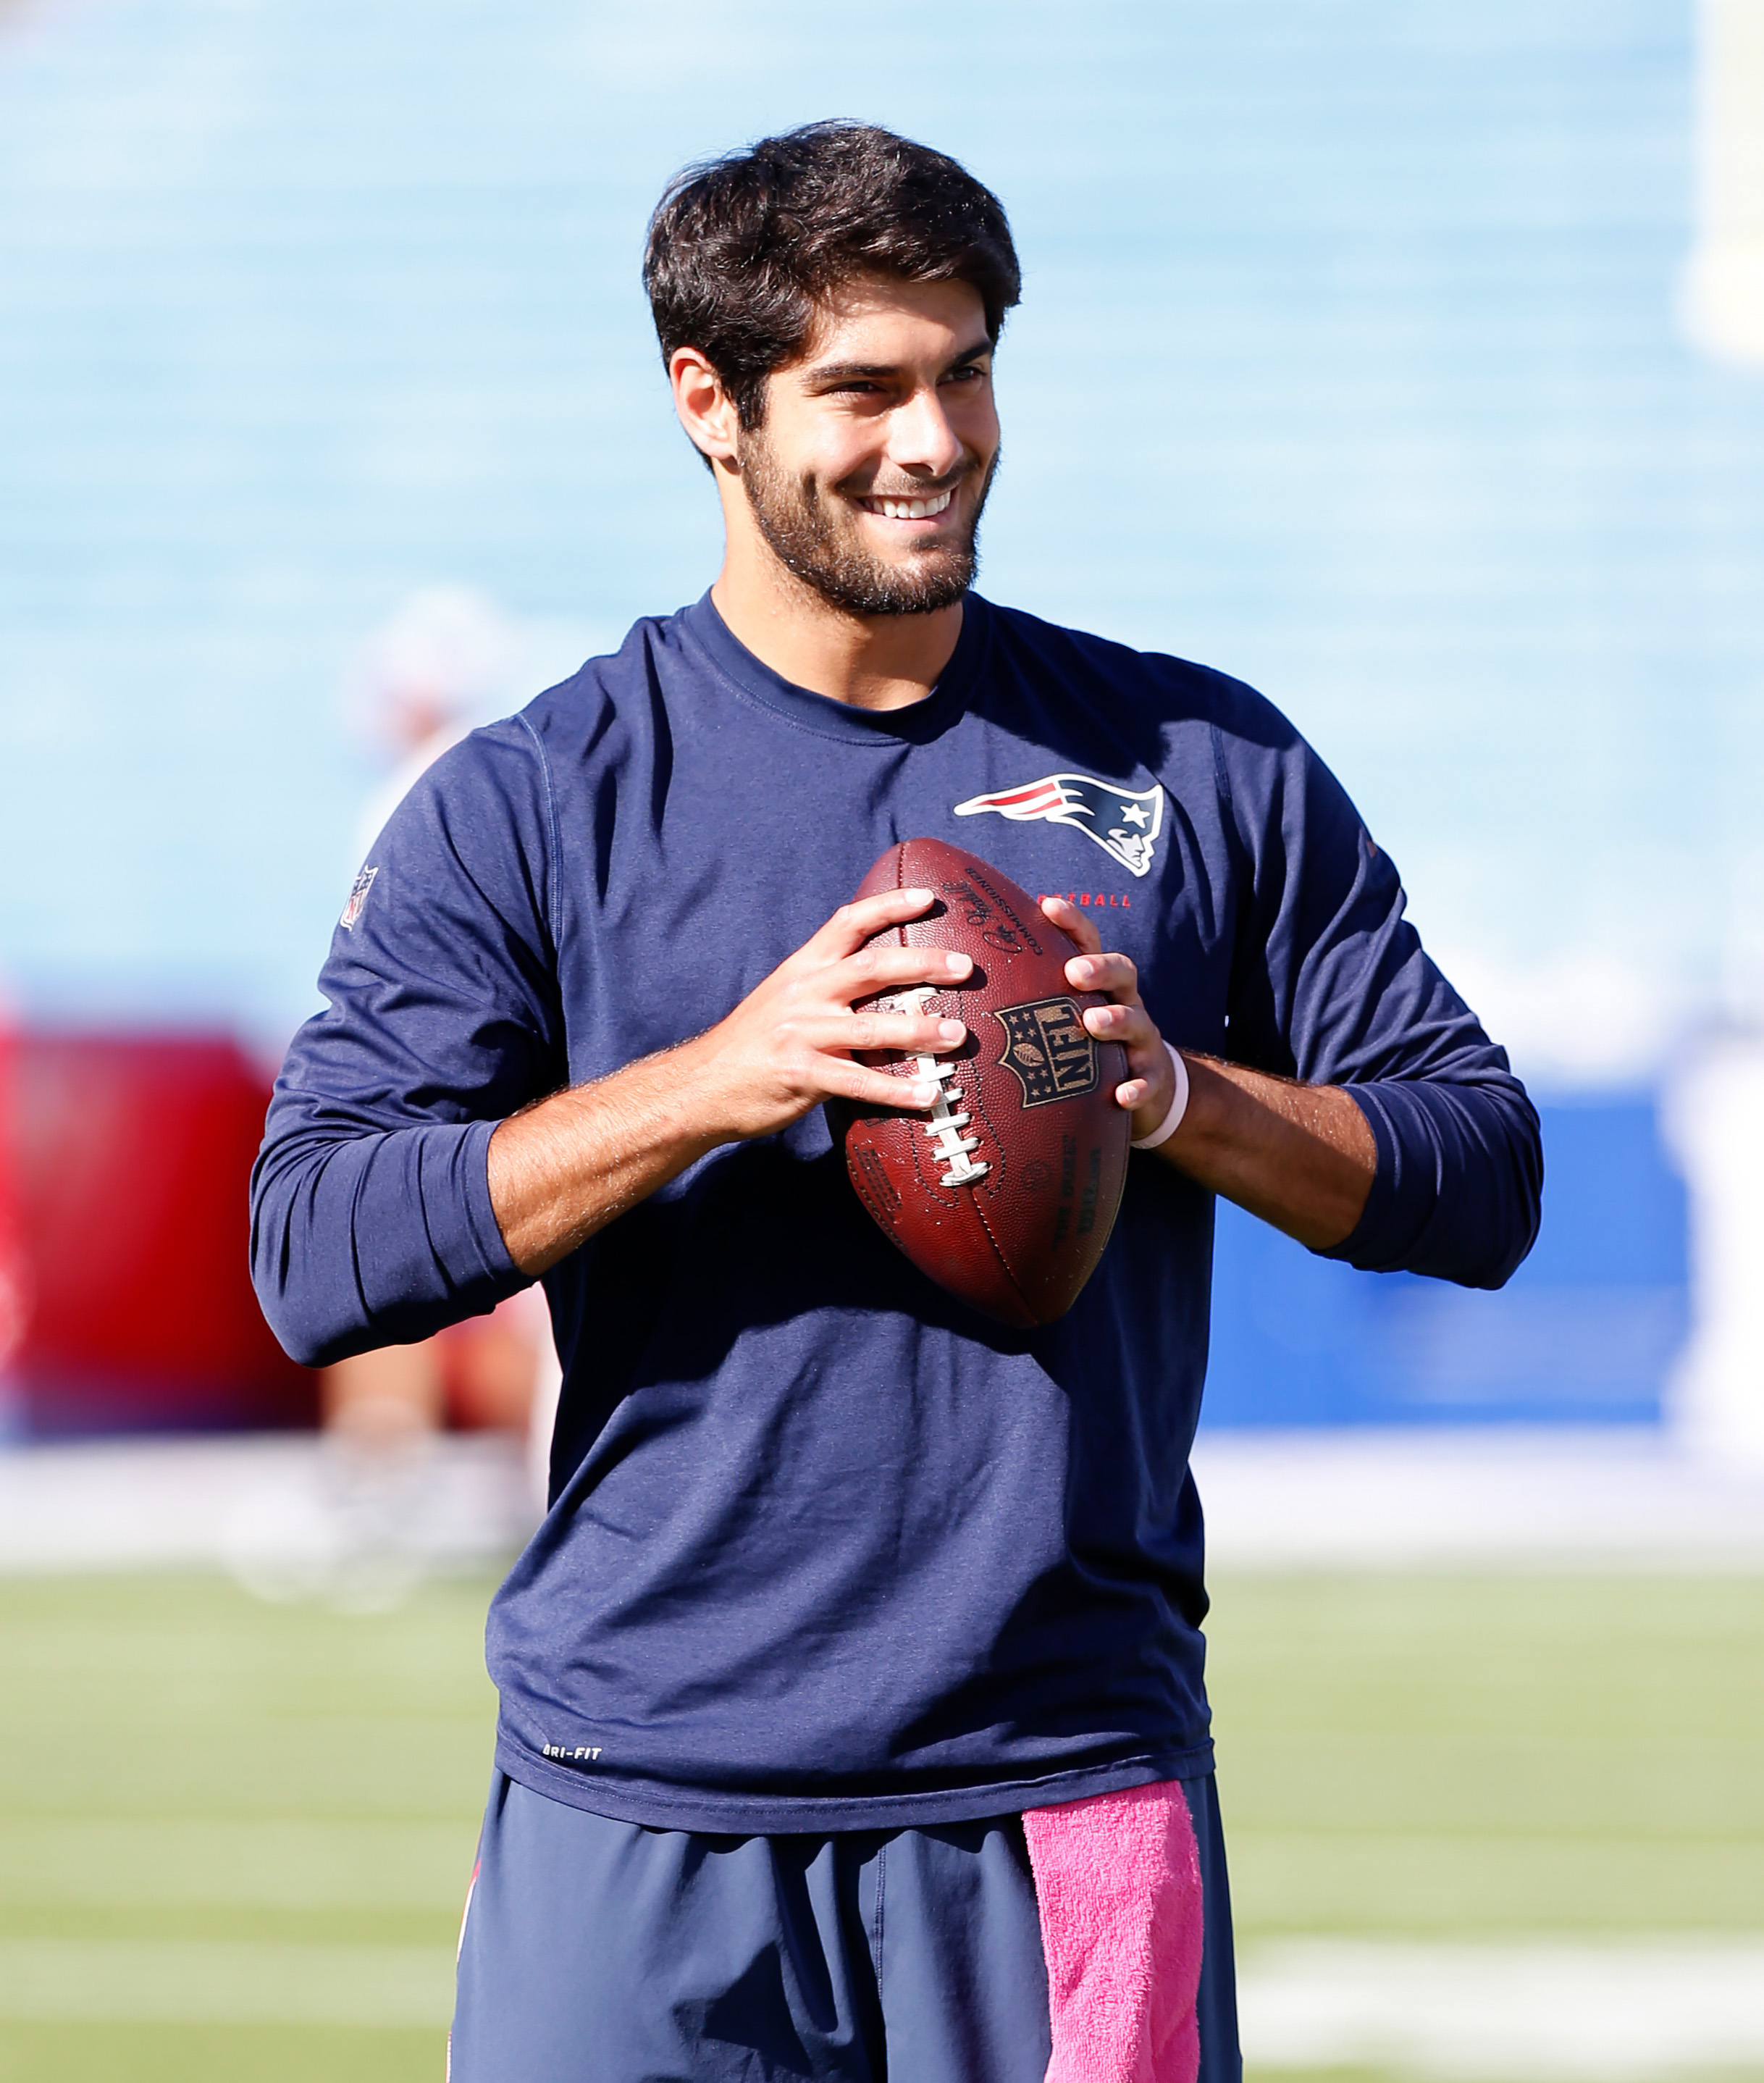 7 facts you need to know about new Patriots starting QB Jimmy Garoppolo, Tom Brady's replacement ...